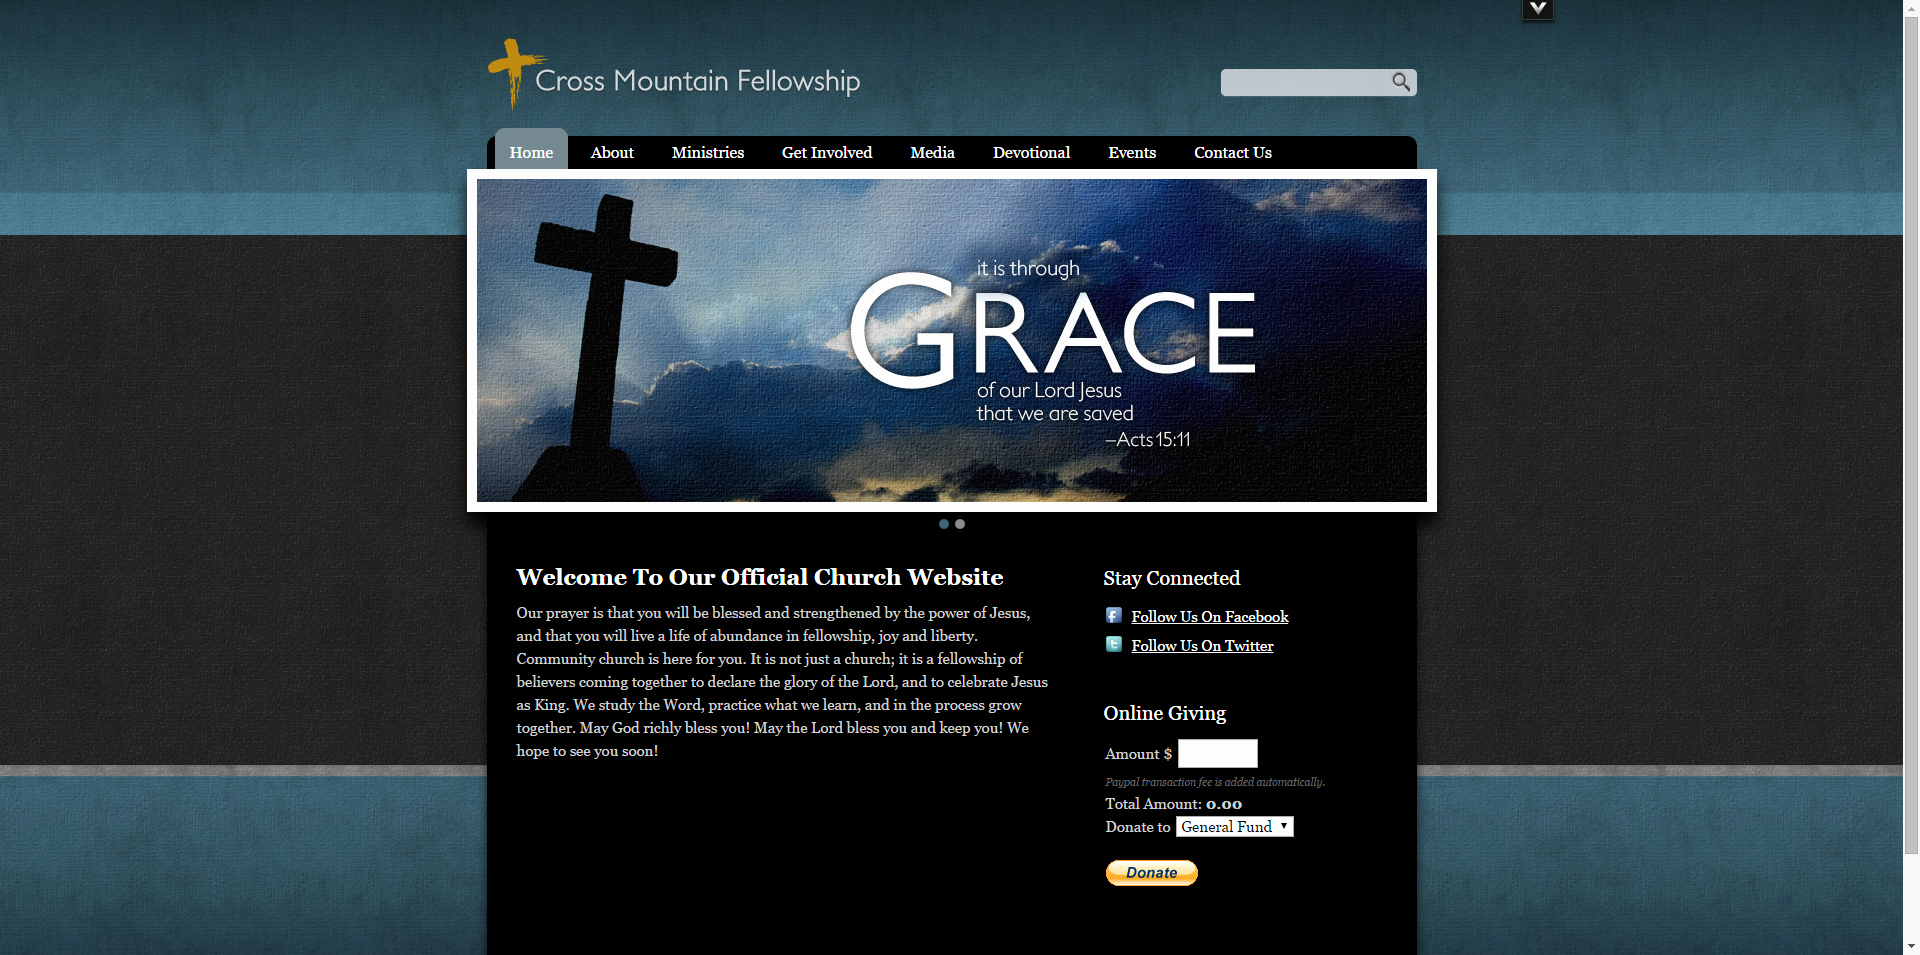 Video Background Website Template Unique 30 Best Church Website Templates for Ministry and Outreach